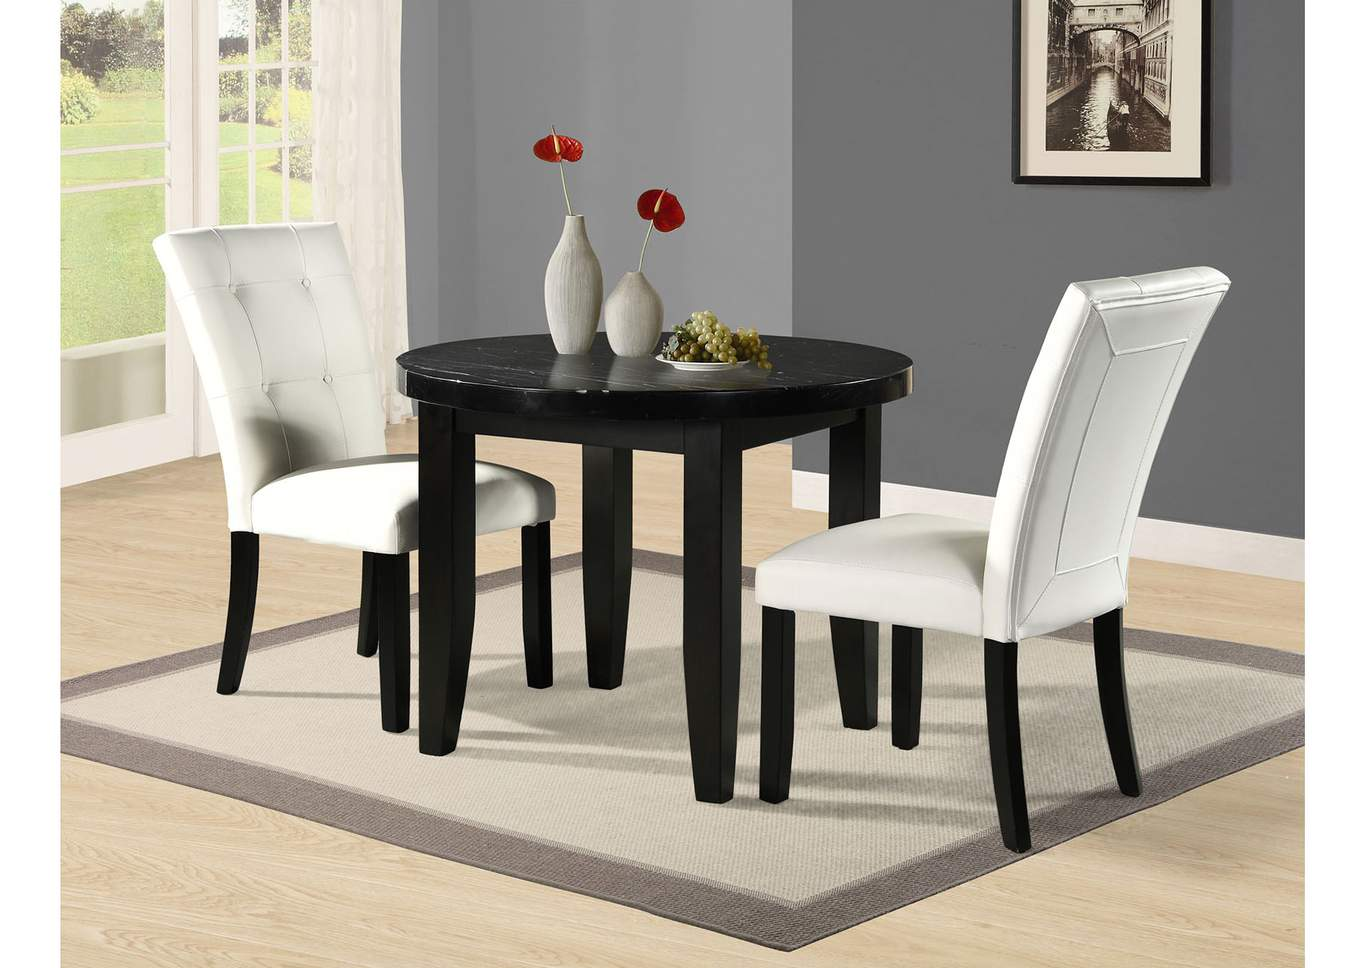 Markina Black Round Marble Top Dining Table,Steve Silver